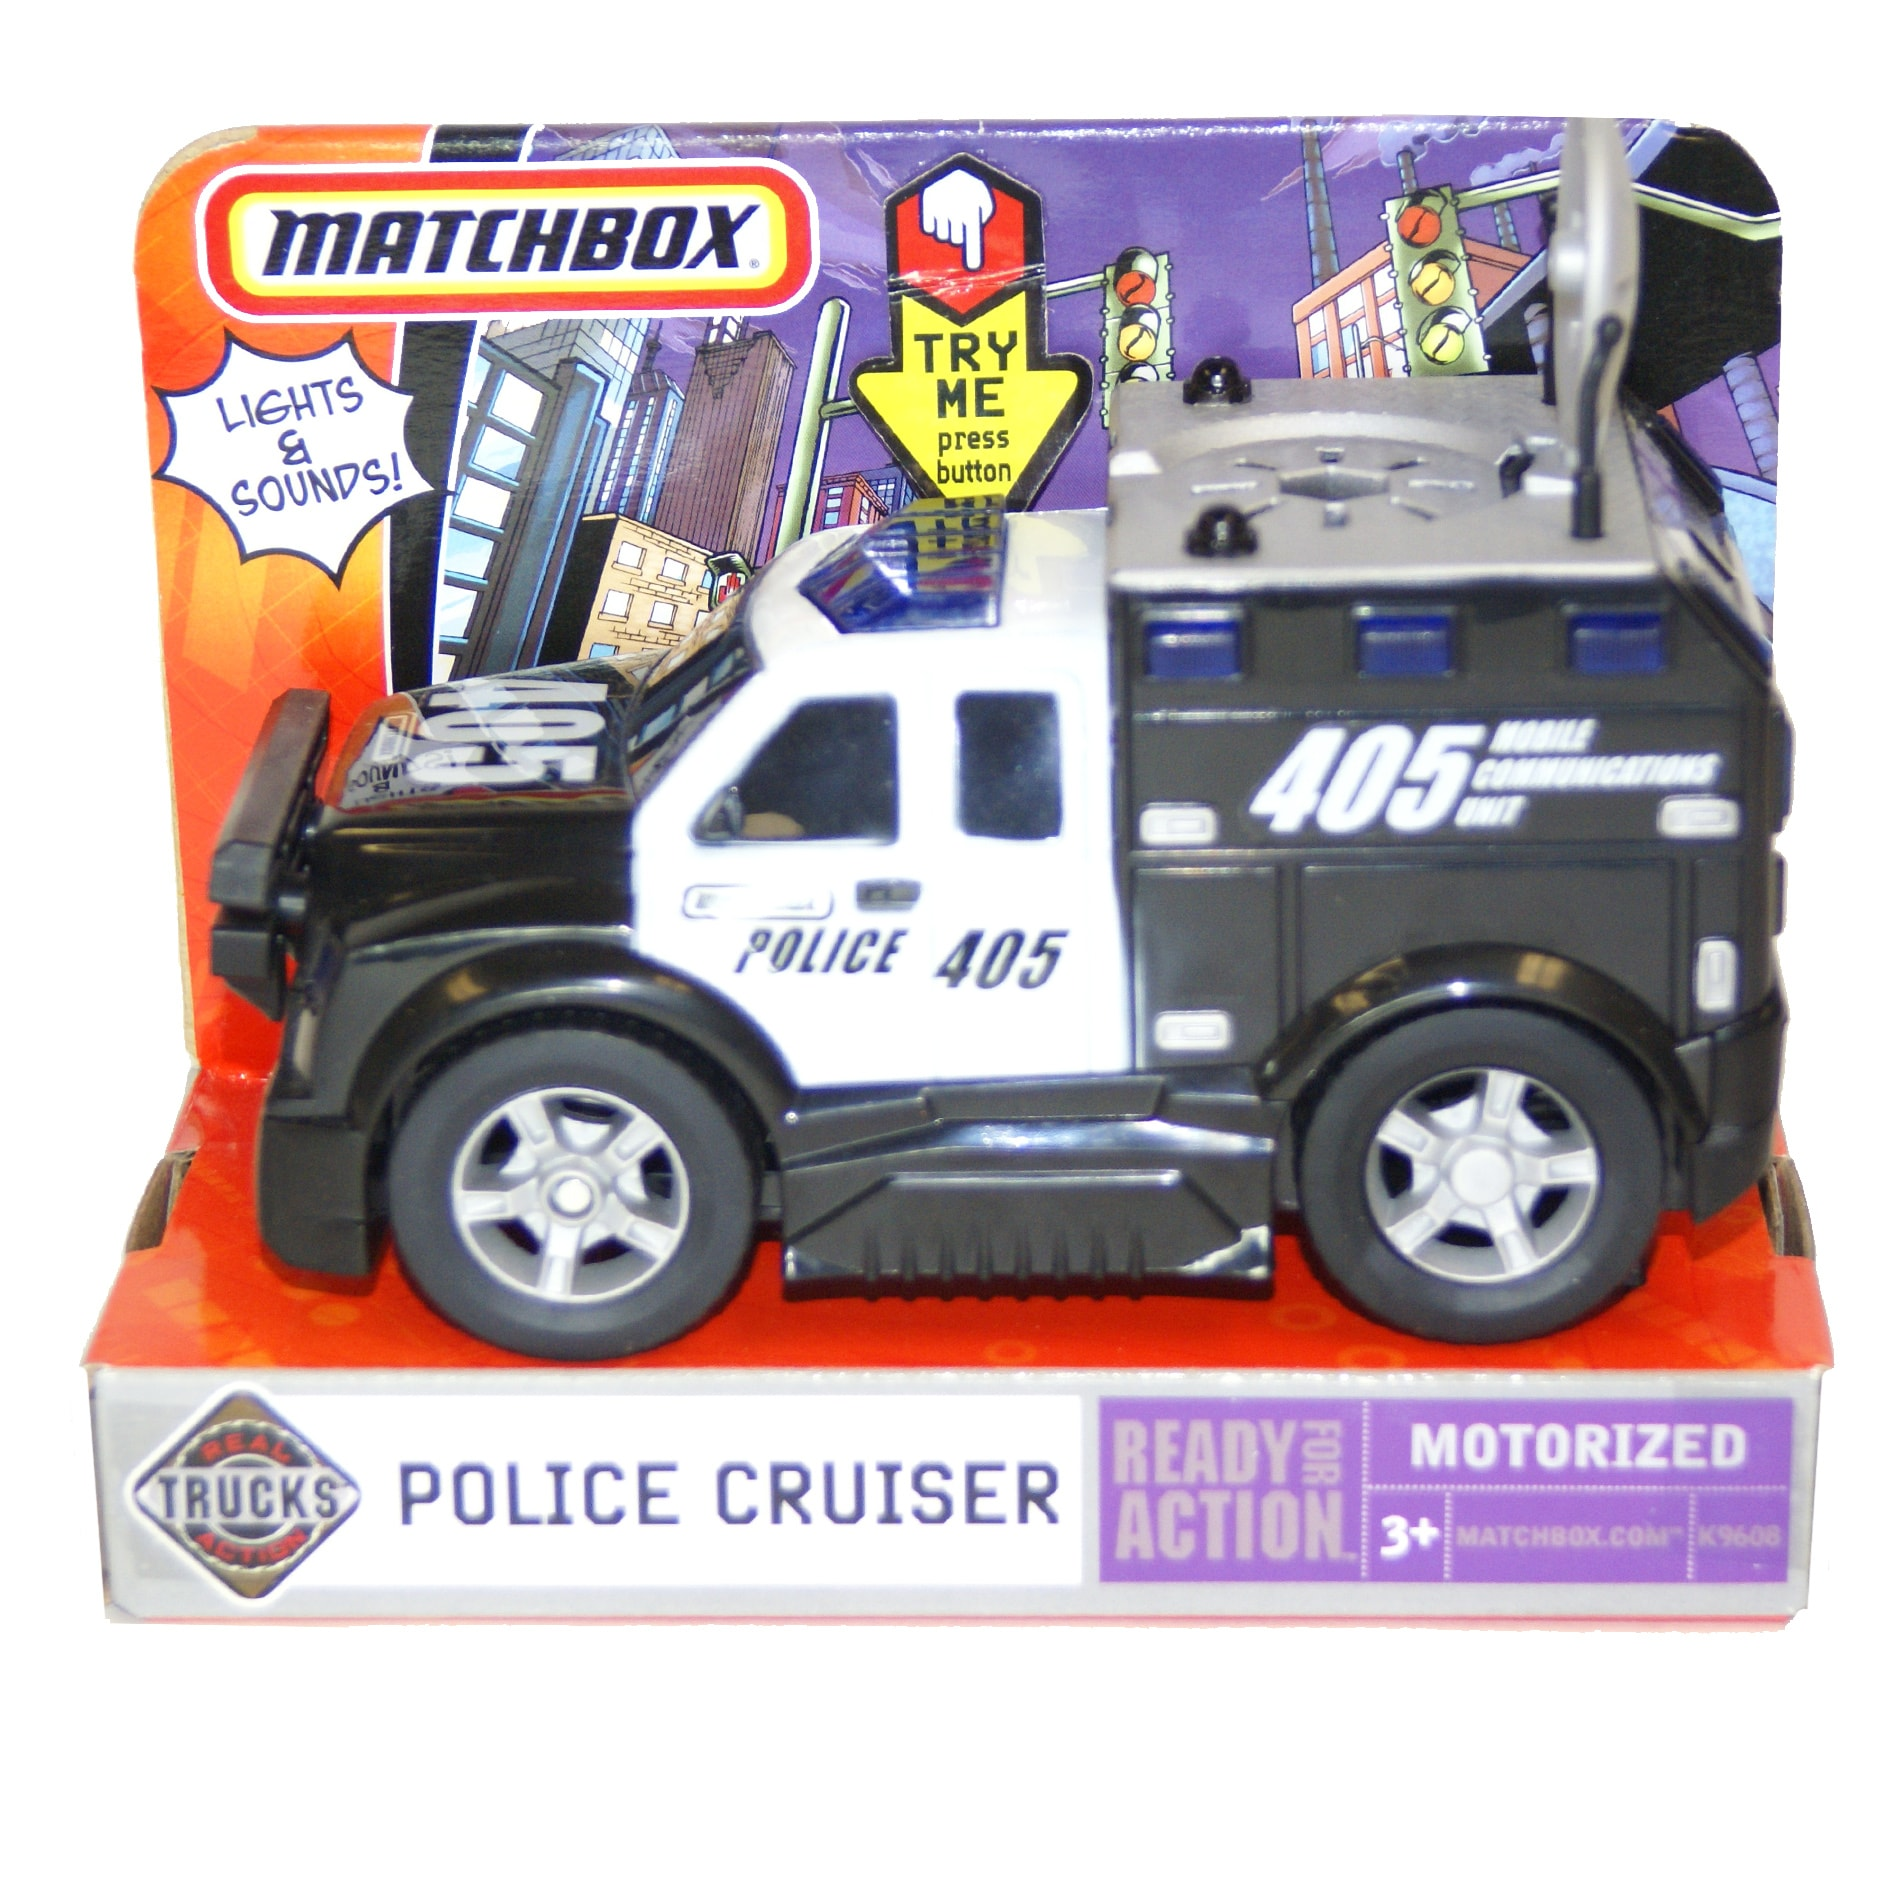 Matchbox Real Action Police Cruiser